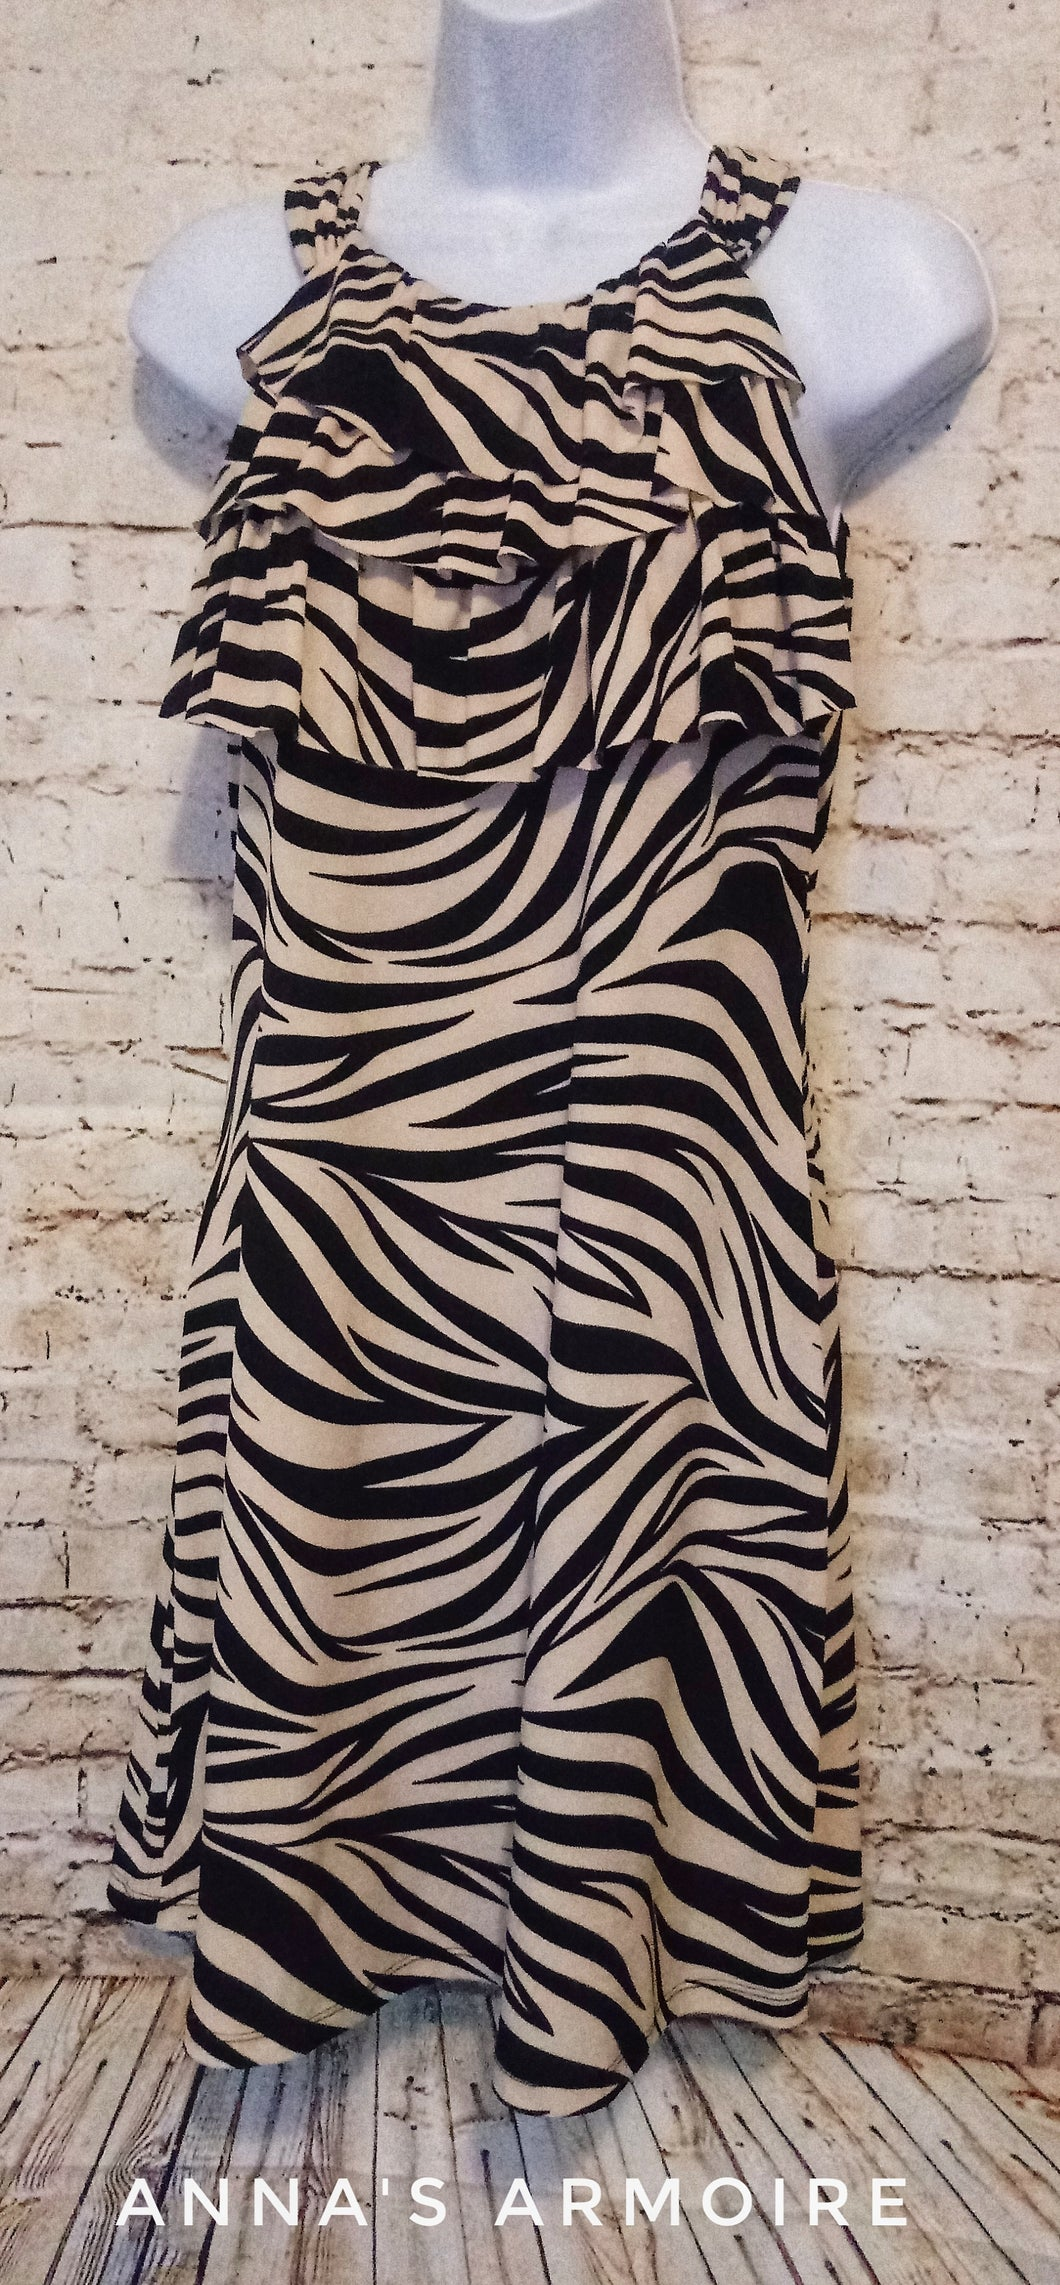 Enfocus Studio Shift Dress Size 10 - Anna's Armoire